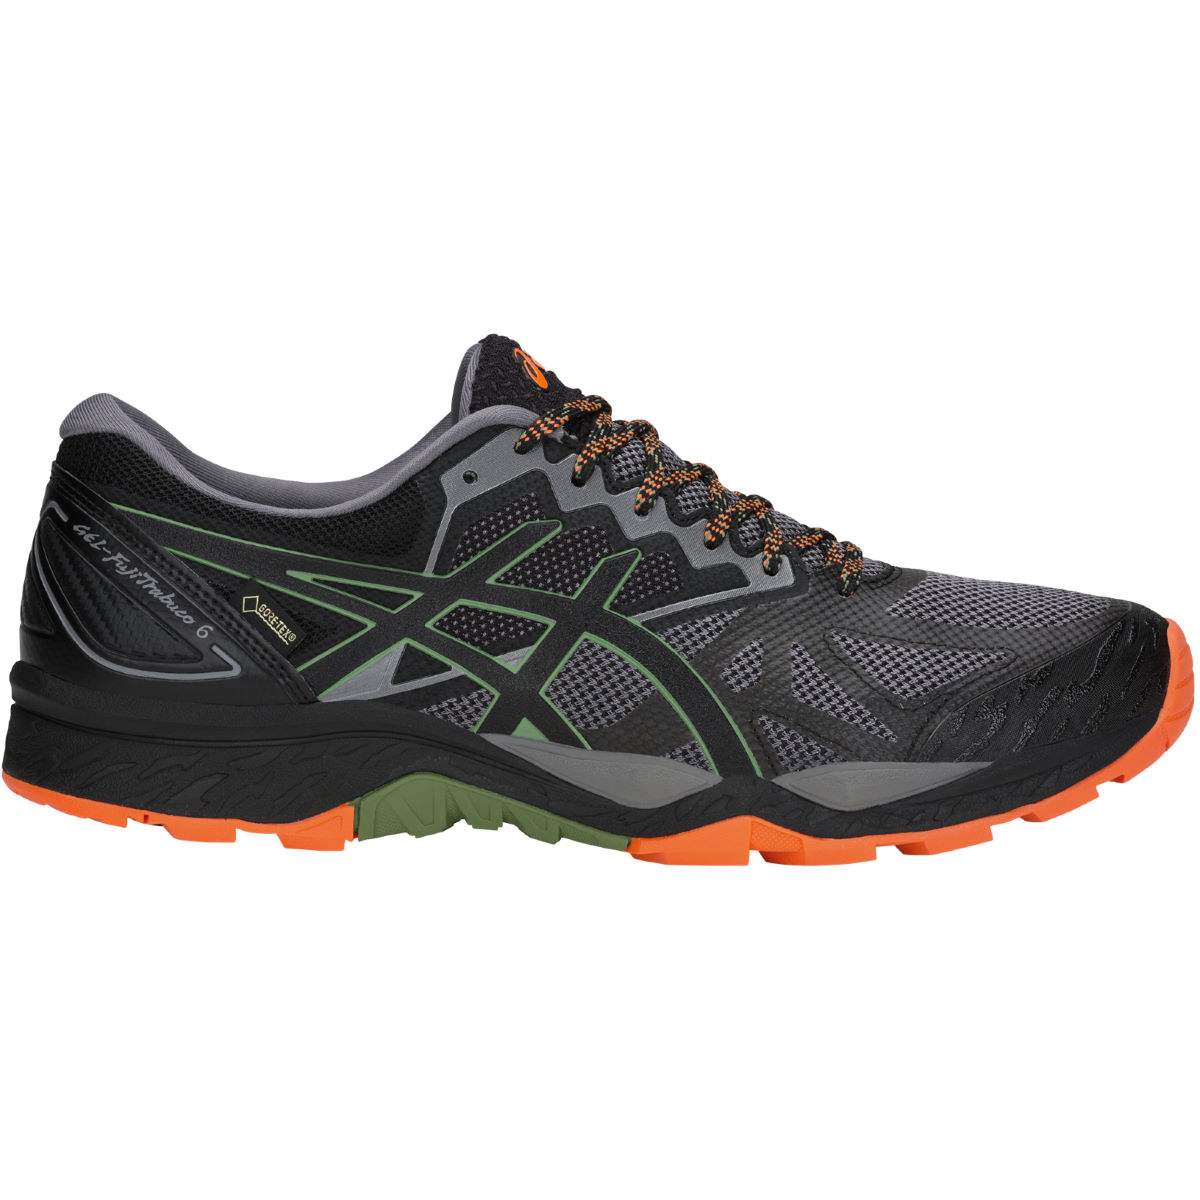 Chaussures Asics Gel-Fujitrabuco 6 GTX - UK 7 Carbon/Black